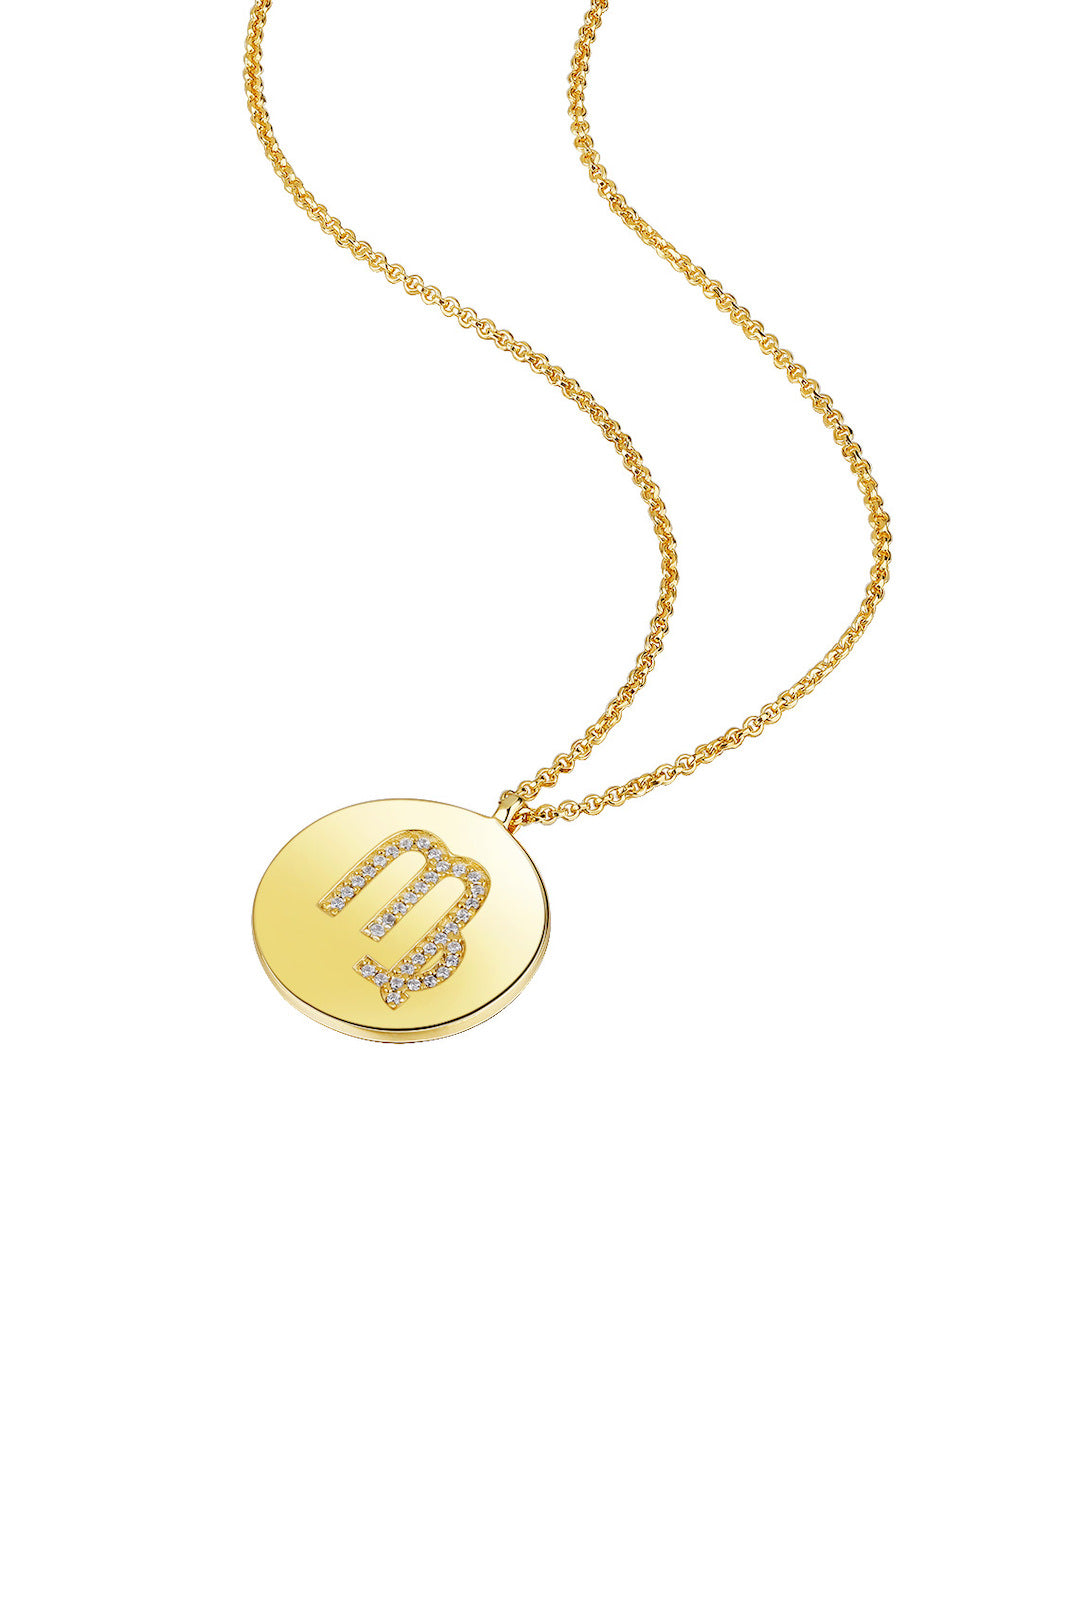 Gold Plated Silver Zodiac Necklace - Virgo Side View